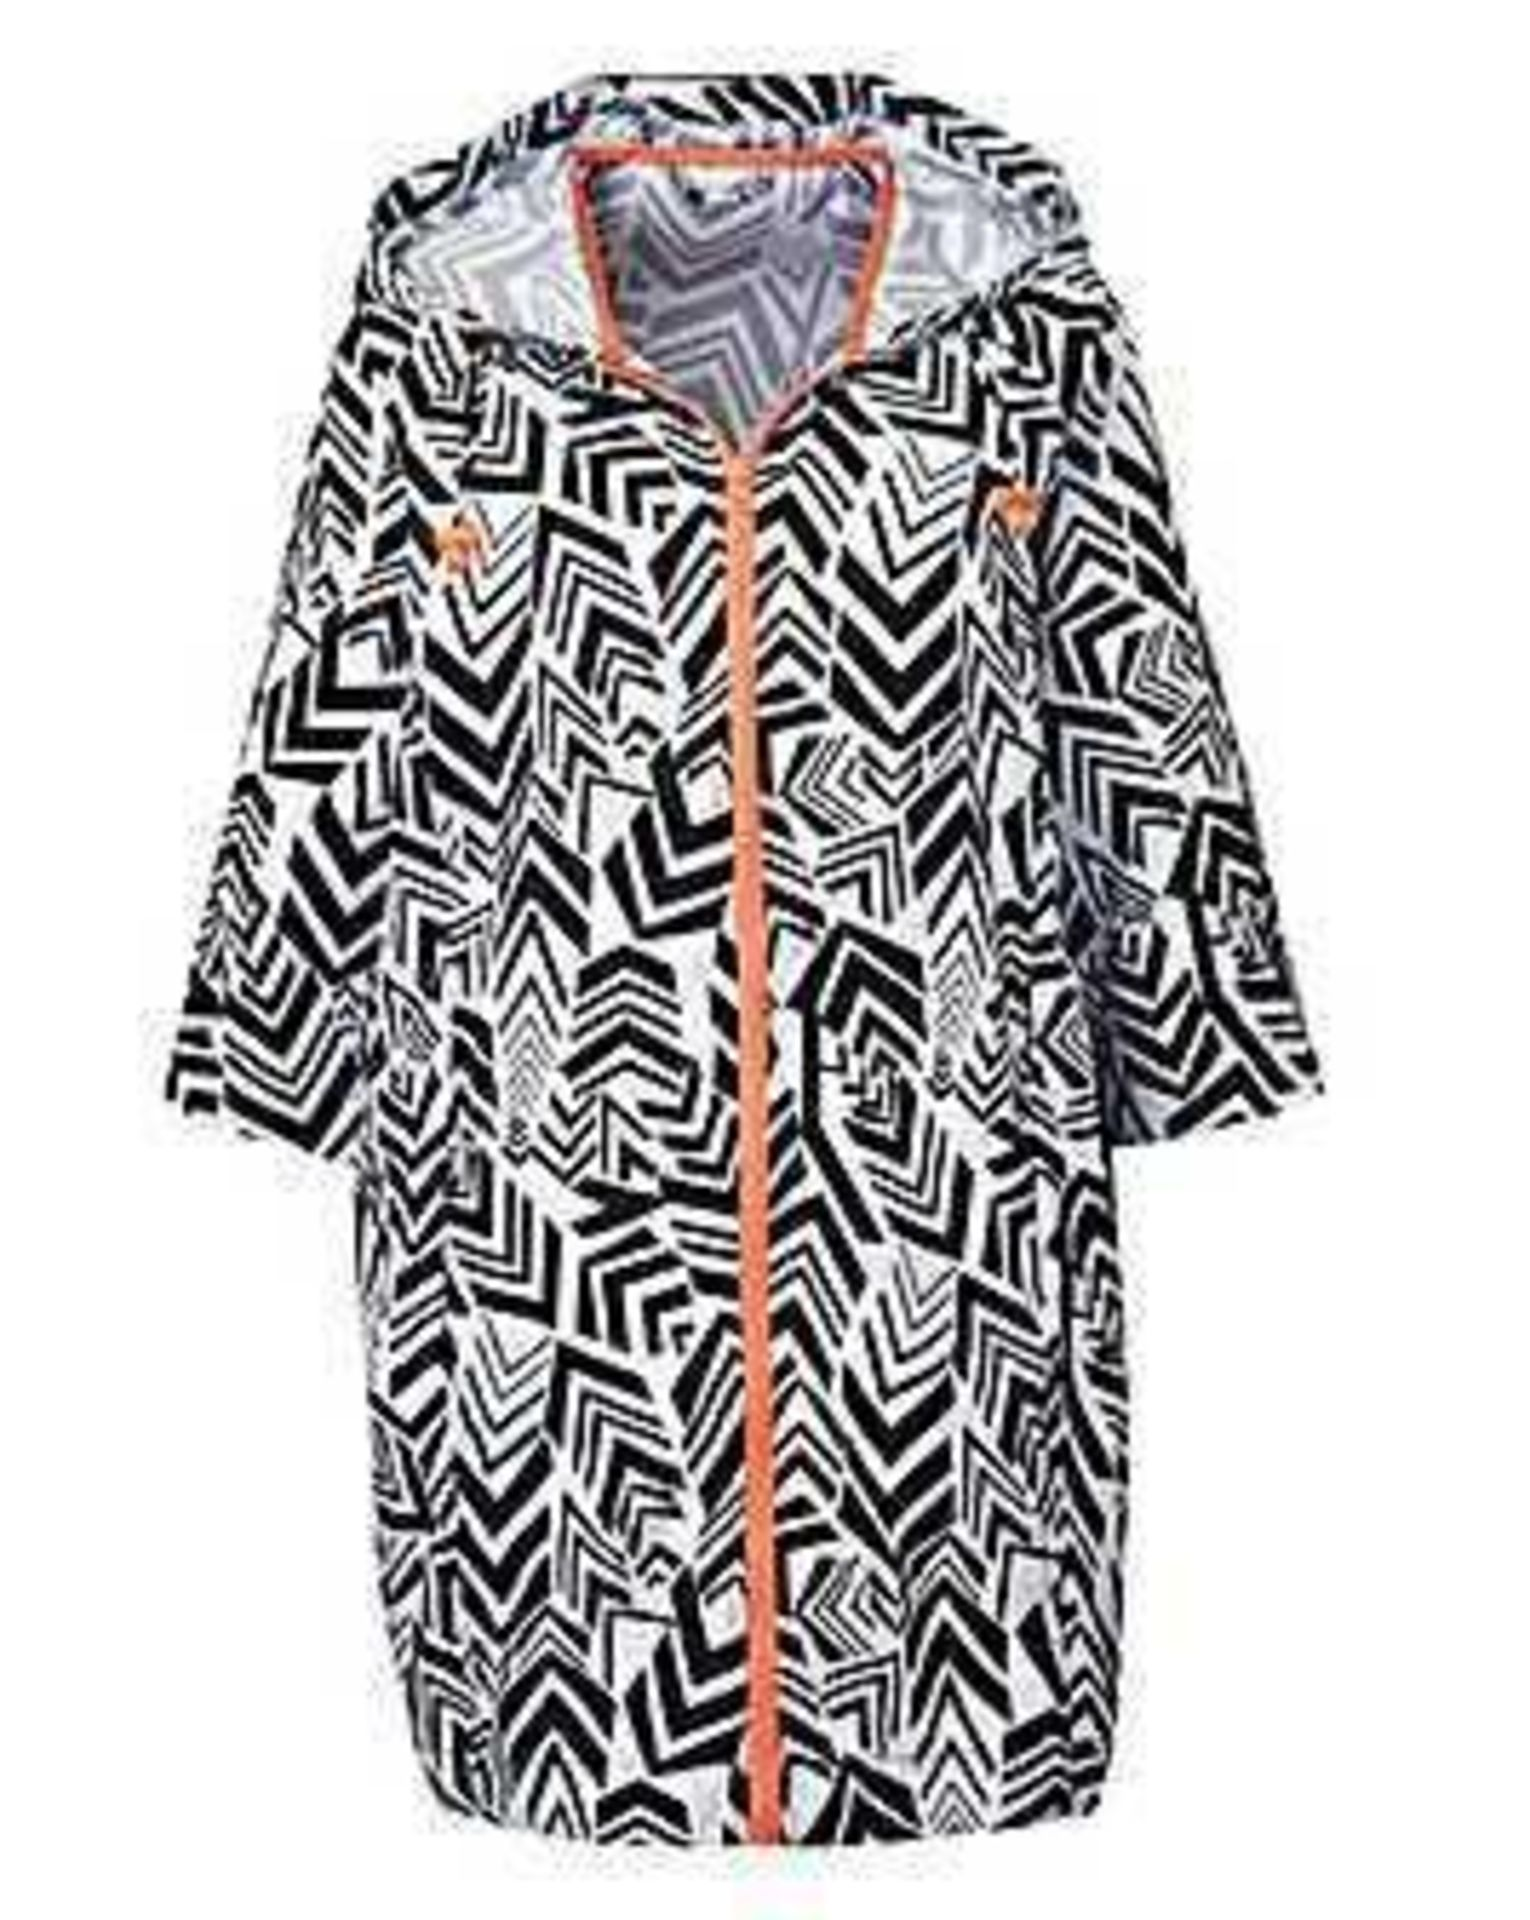 RRP £750 Lot To Contain 30 Brand New Bagged/Tagged Women'S Size 12/14 Black And White Geo Printed